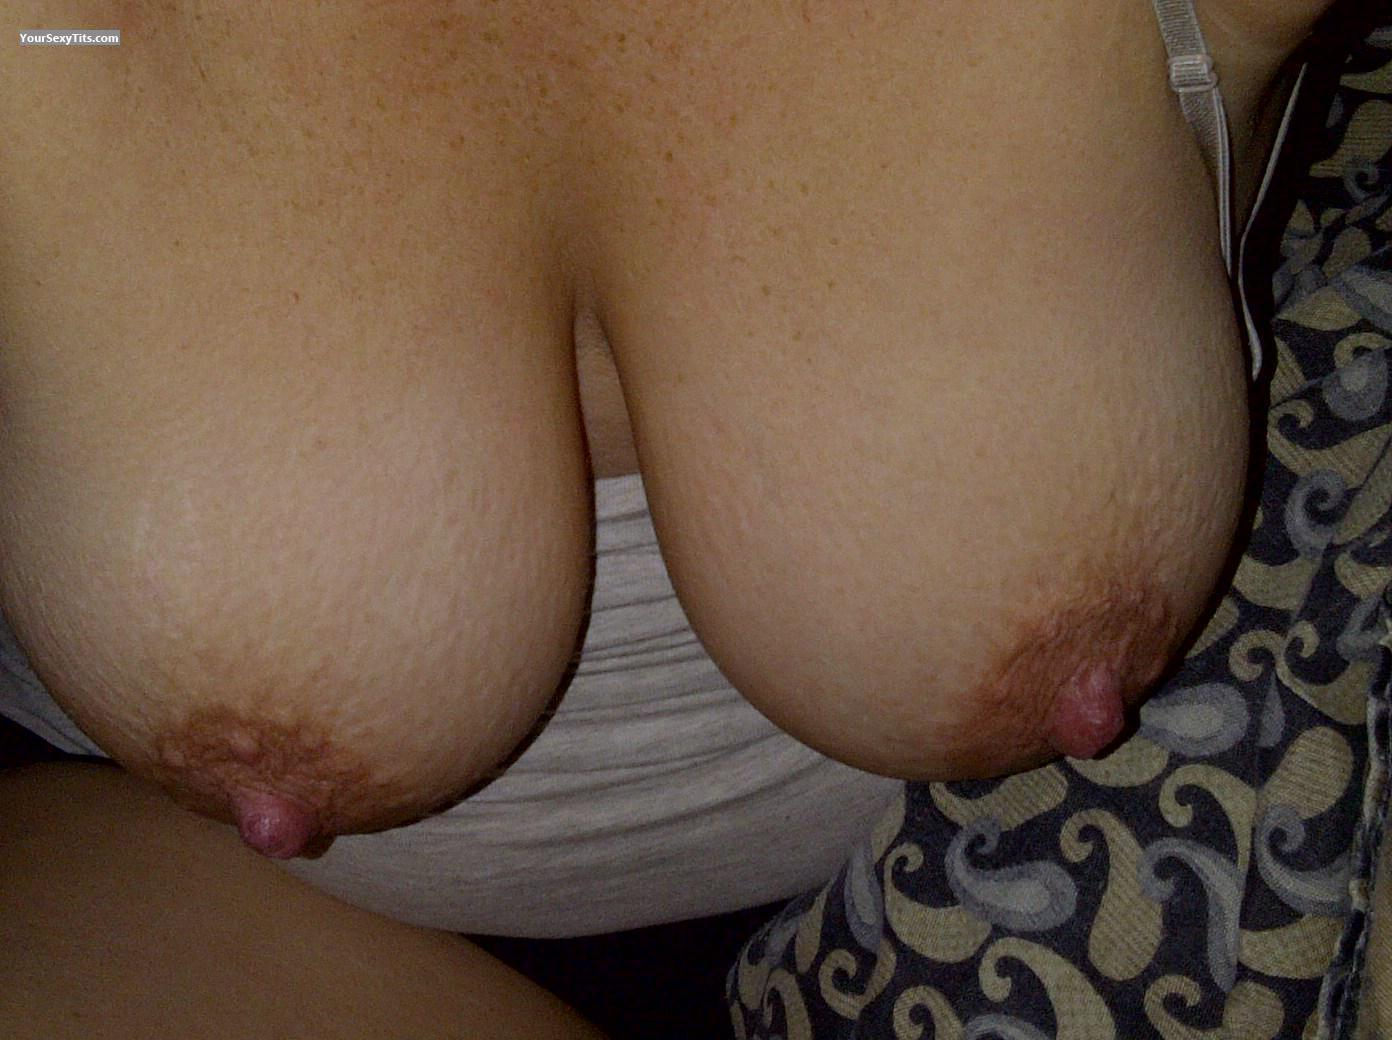 My Medium Tits Selfie by Hockeygirl